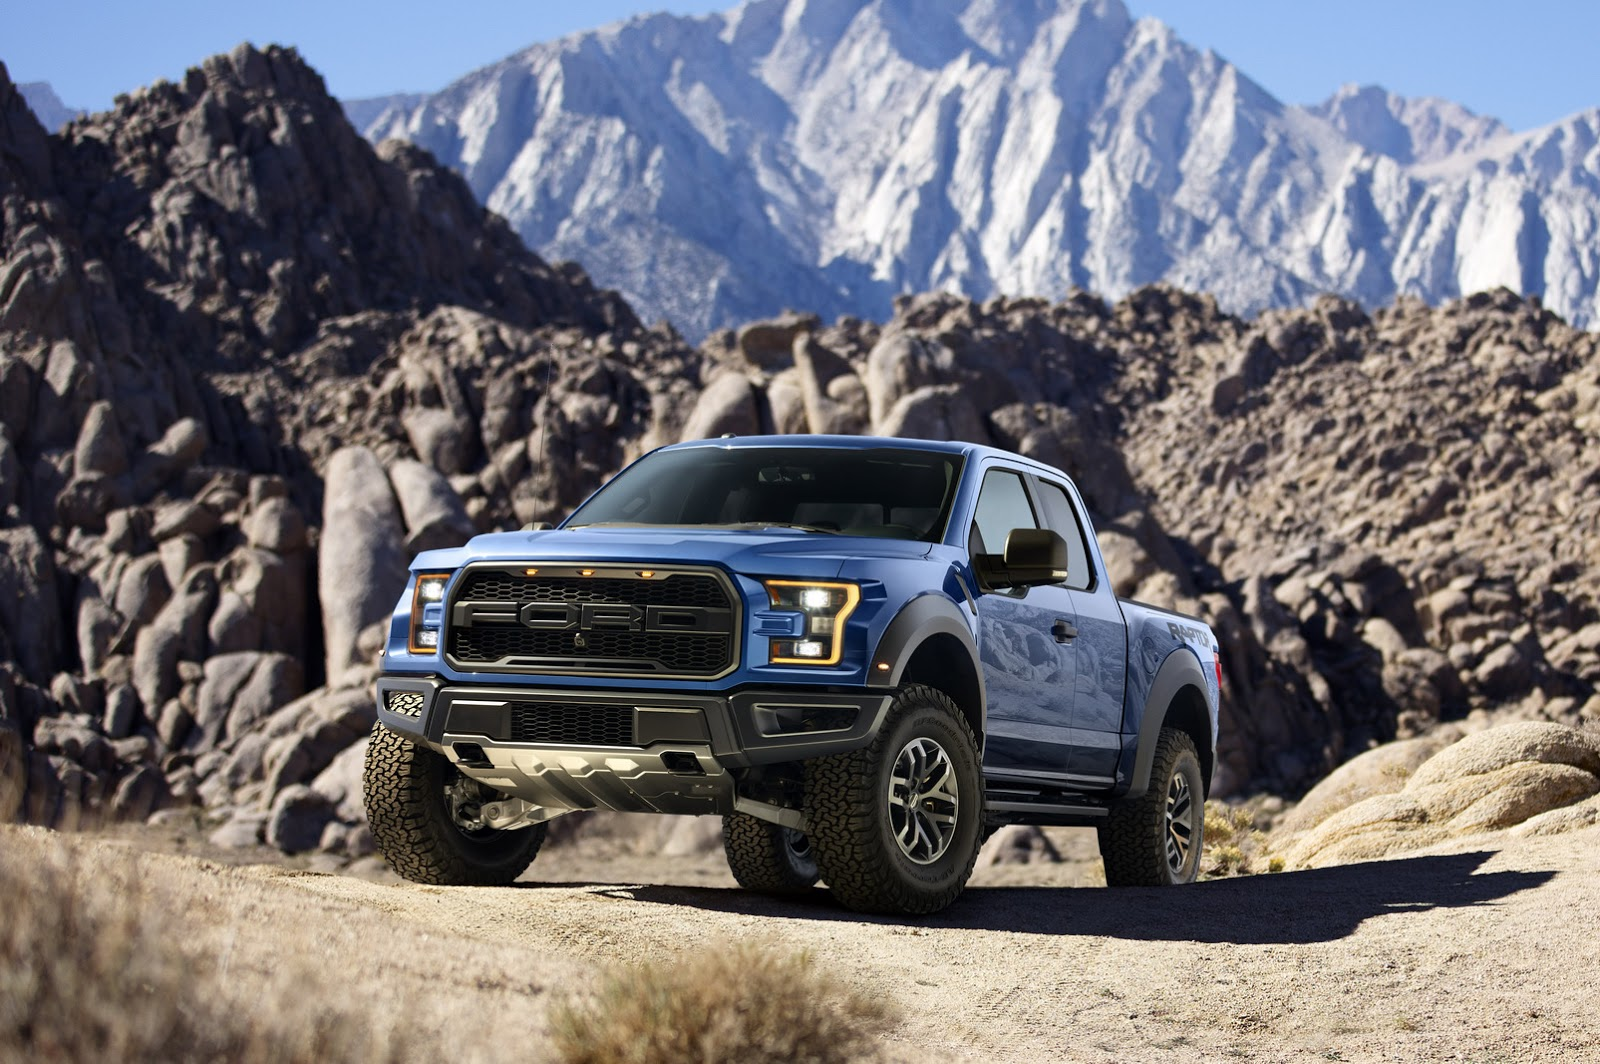 2020 Ford F-150 Raptor To Have 450 HP And 510 lb-ft